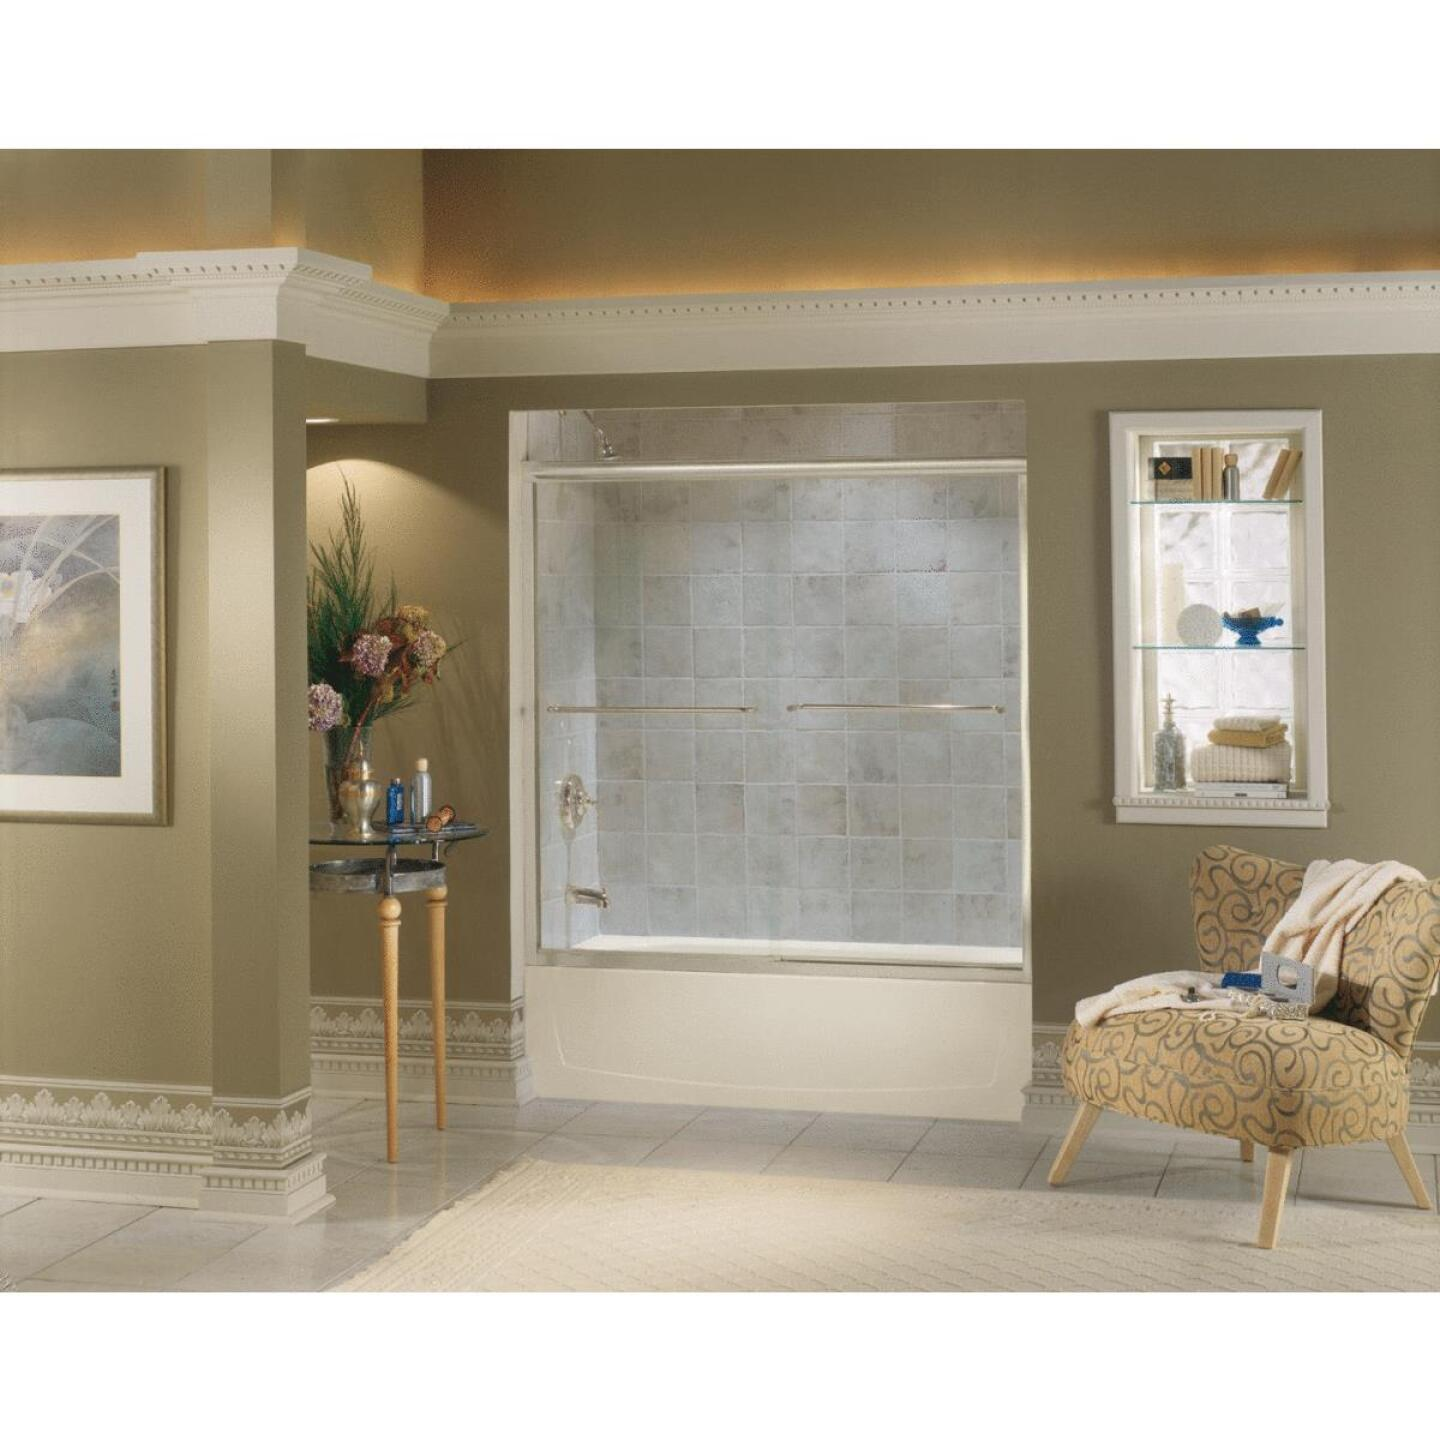 Sterling Finesse 59-5/8 In. W. X 55-3/4 In. H. Nickel Semi-Frameless Clear Glass Sliding Tub Door Image 2